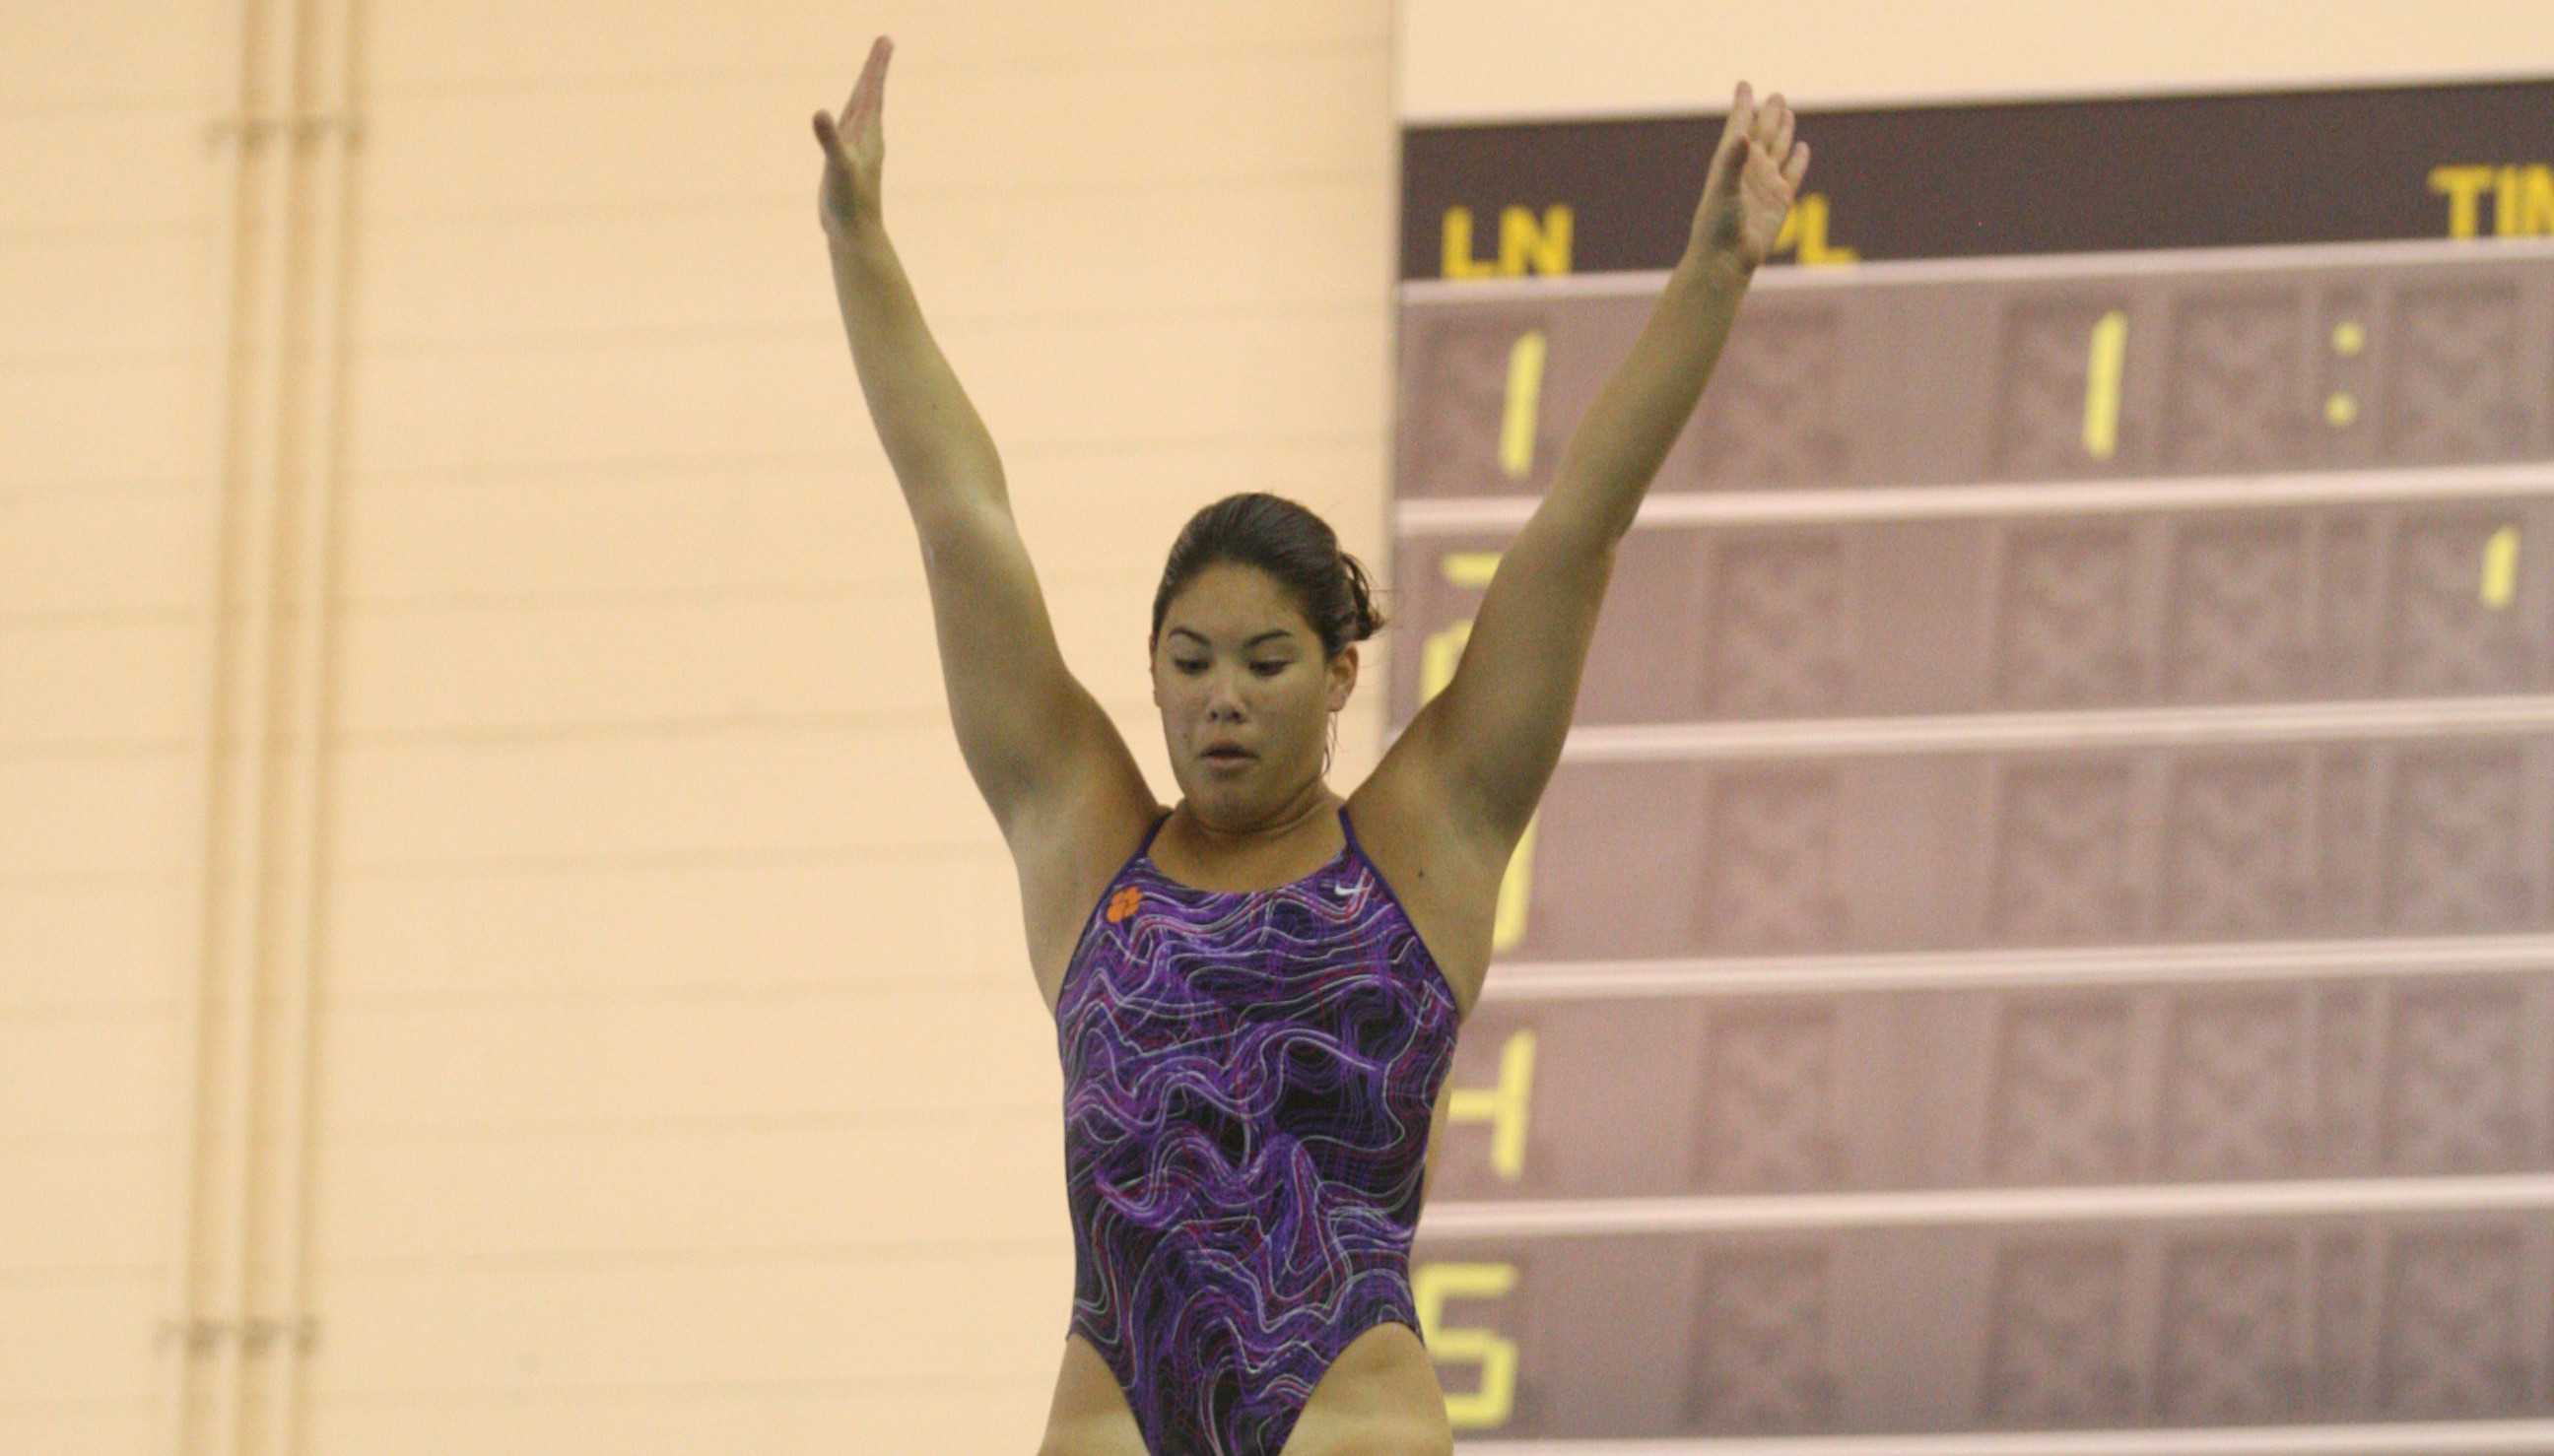 Houston Meet Gives Diving Crucial Experience